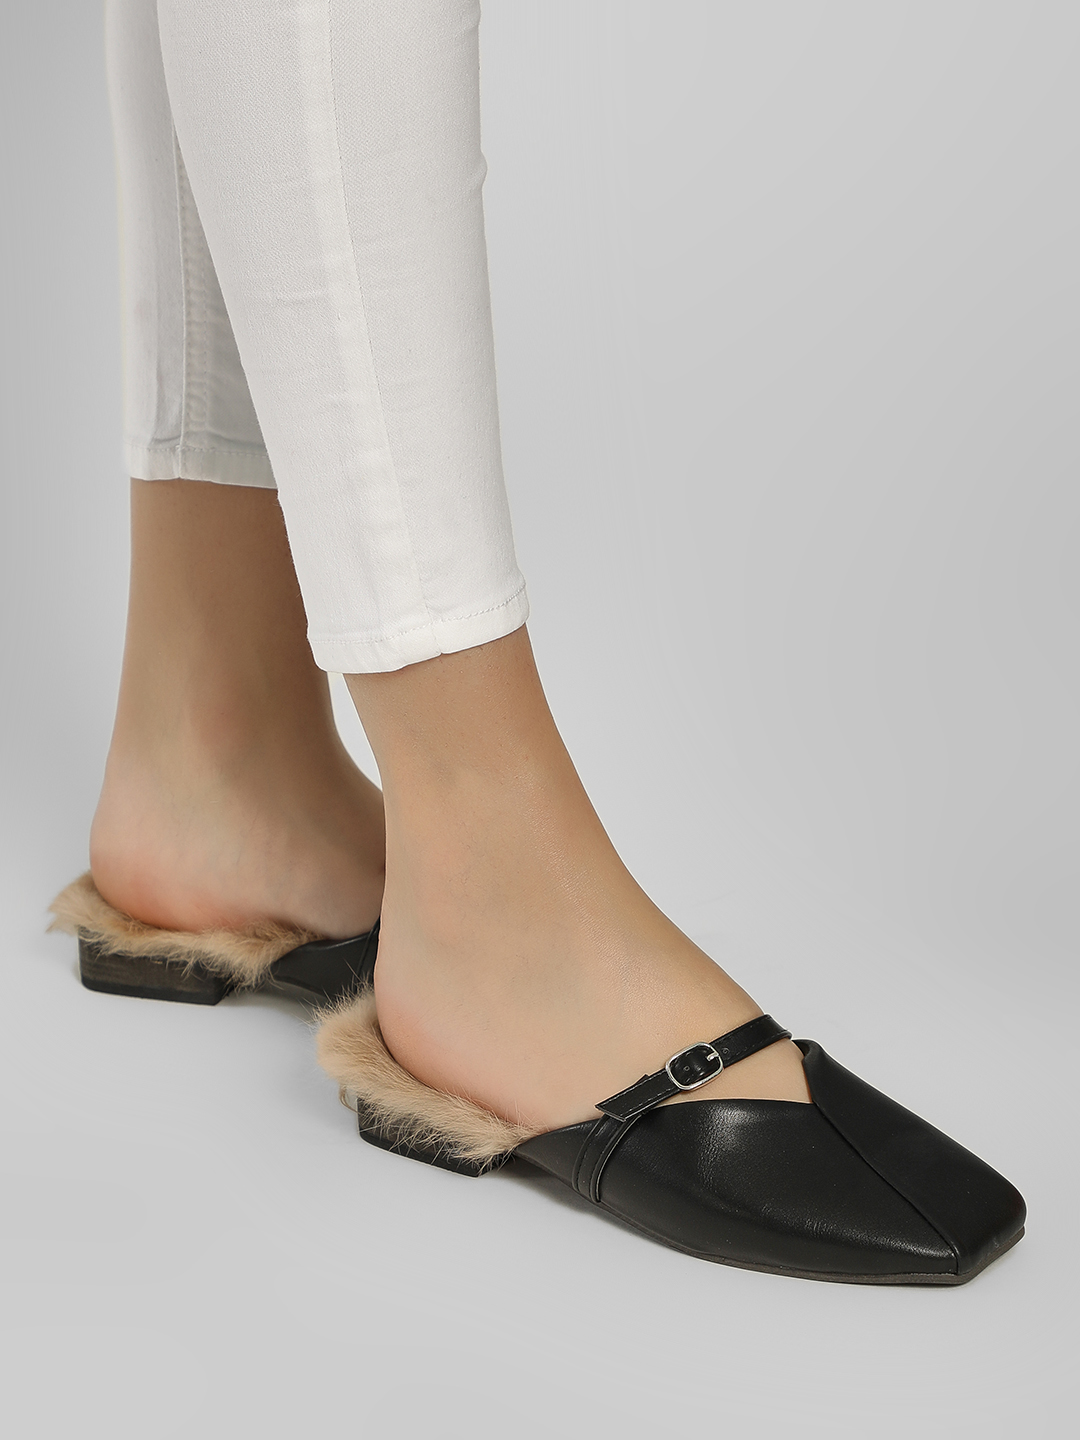 Sole Story Black Overlap Square Toe Flat Mules 1